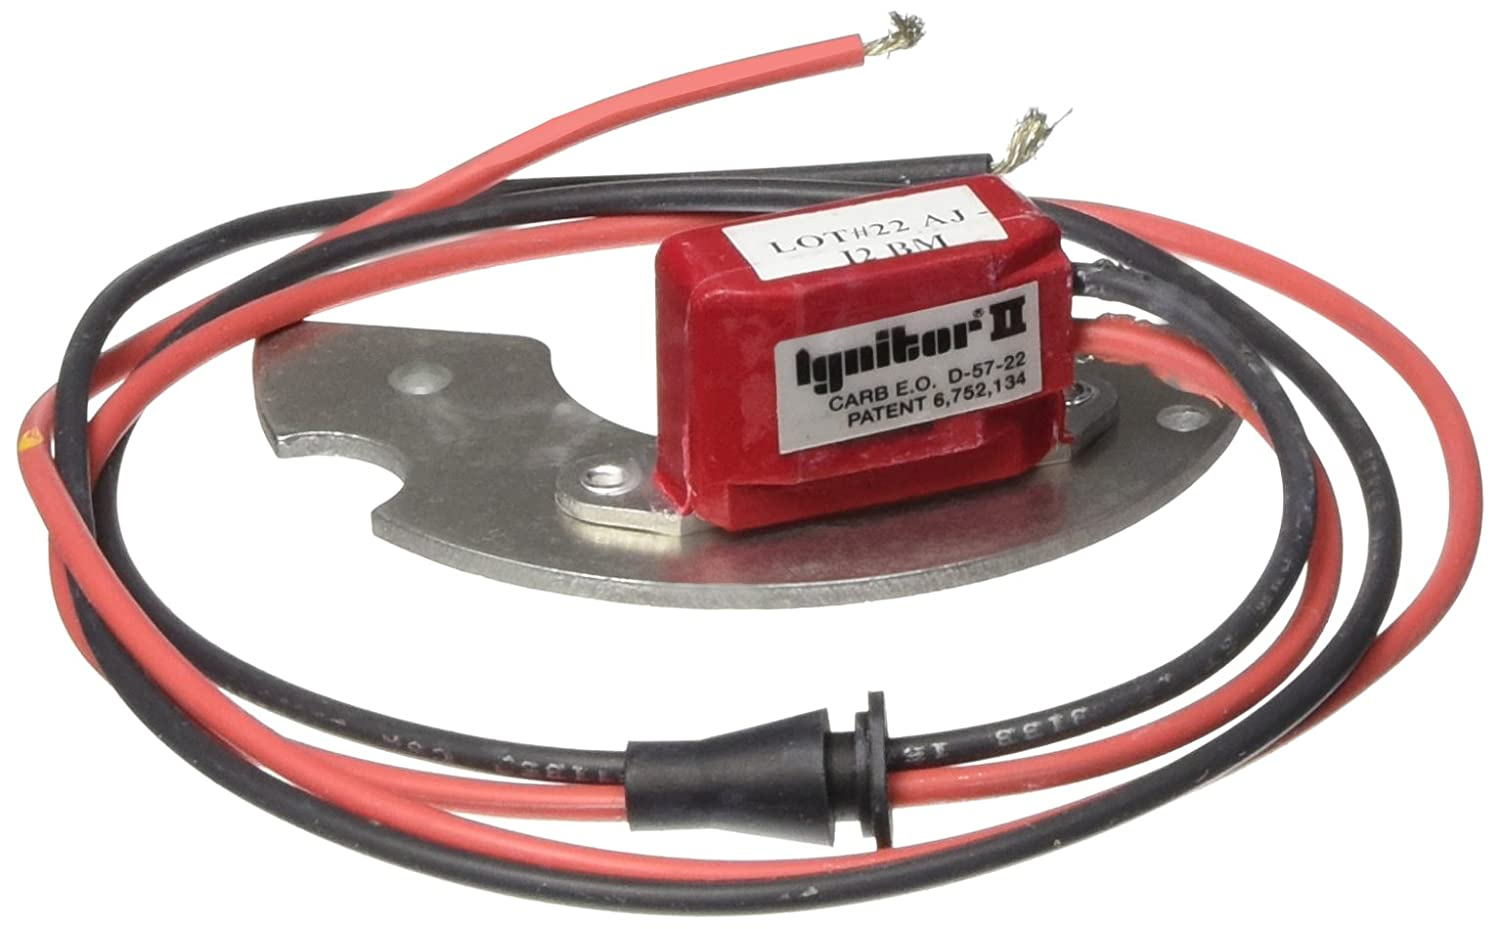 Pertronix 91283 Ignitor II Adaptive Dwell Control for Ford 8 Cylinder